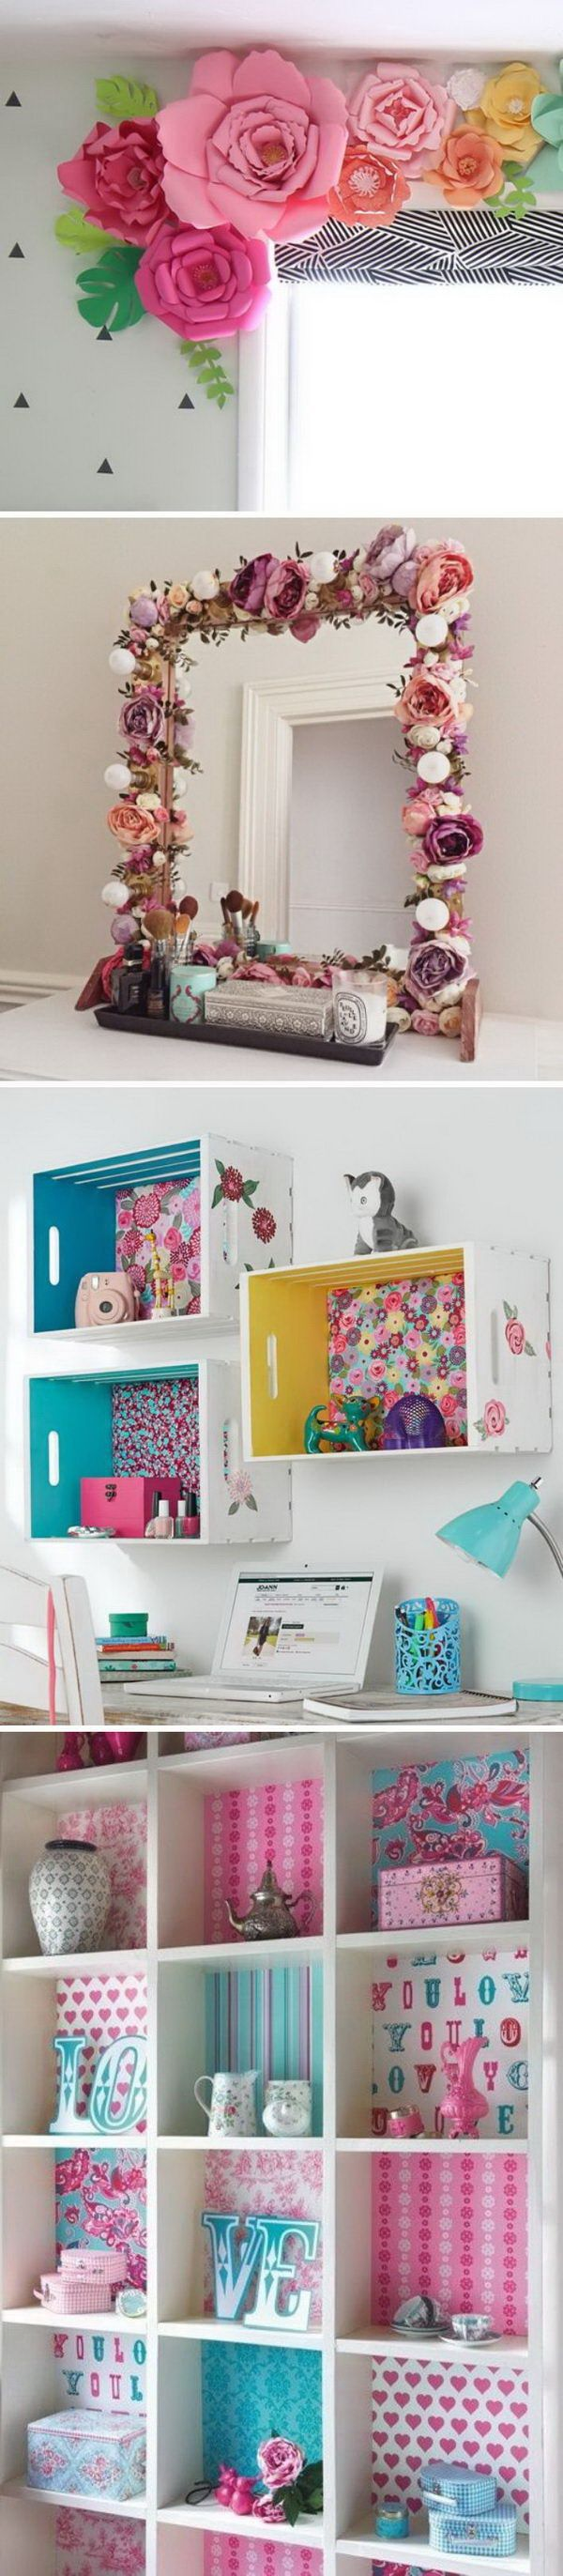 Awesome DIY Projects To Decorate A Girlu0027s